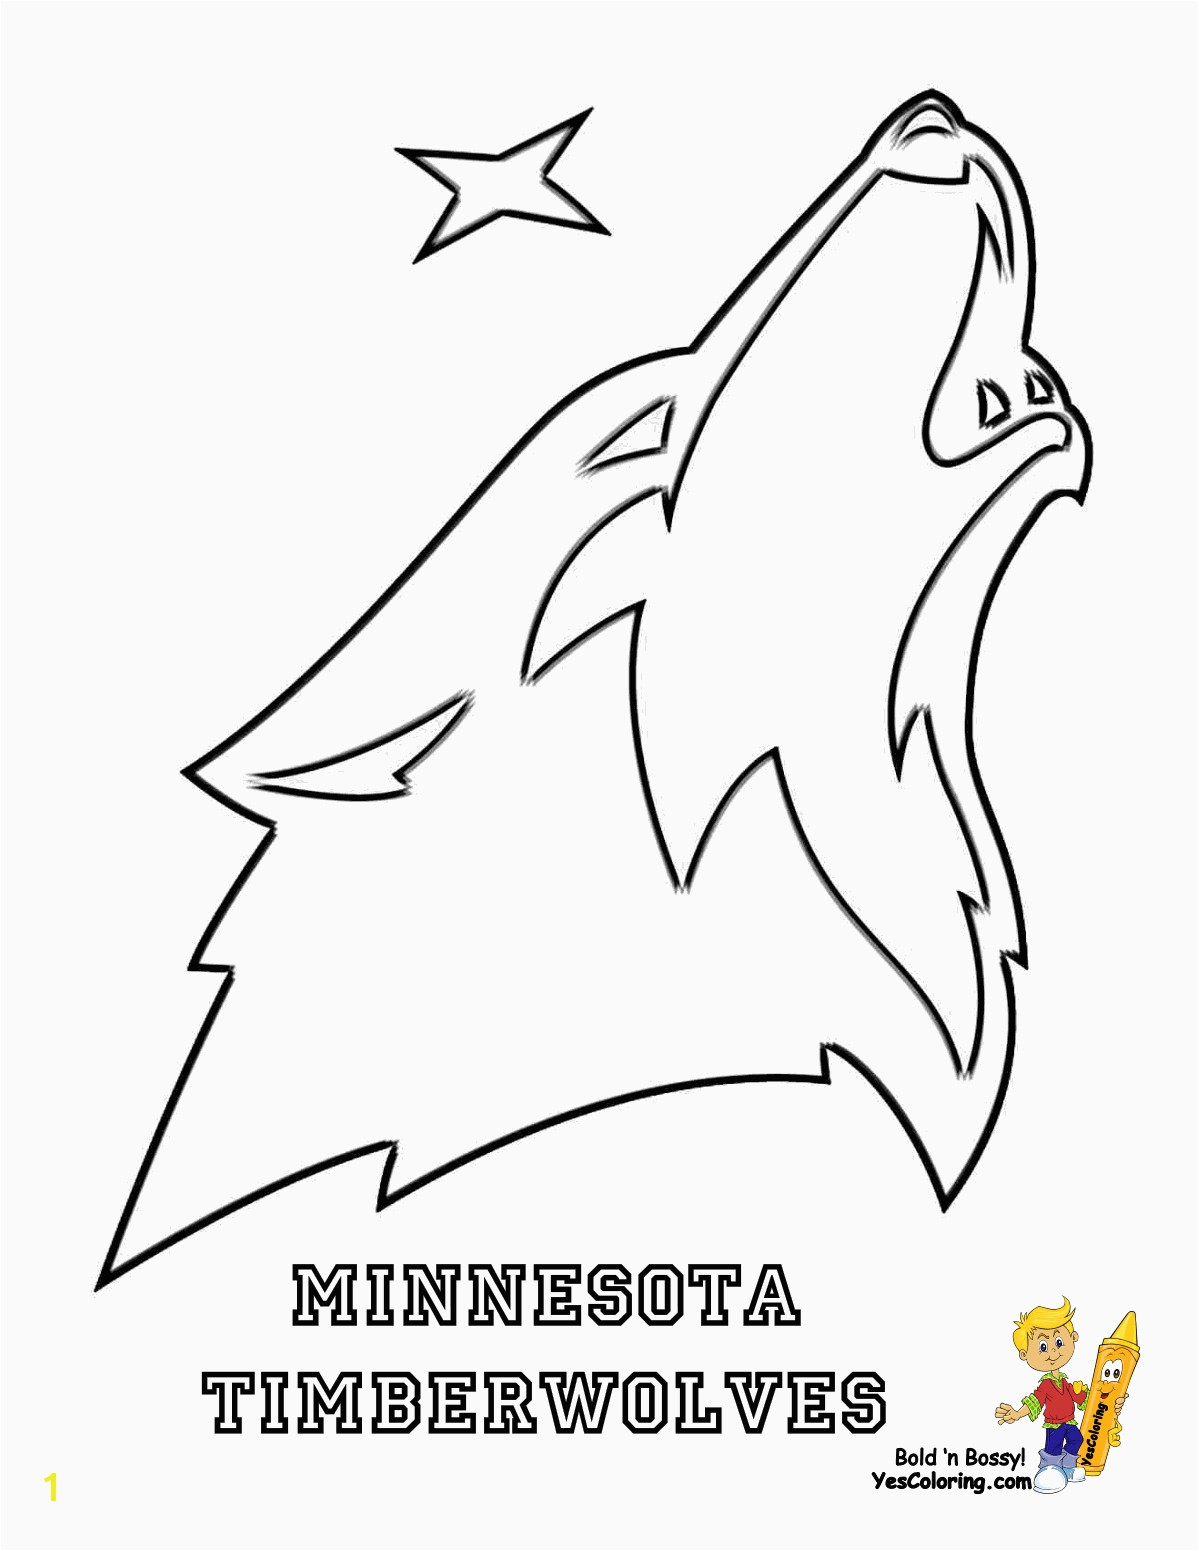 Beautiful Timberwolves Coloring Pages Big Bounce Basketball Printables NBA West Free Sports